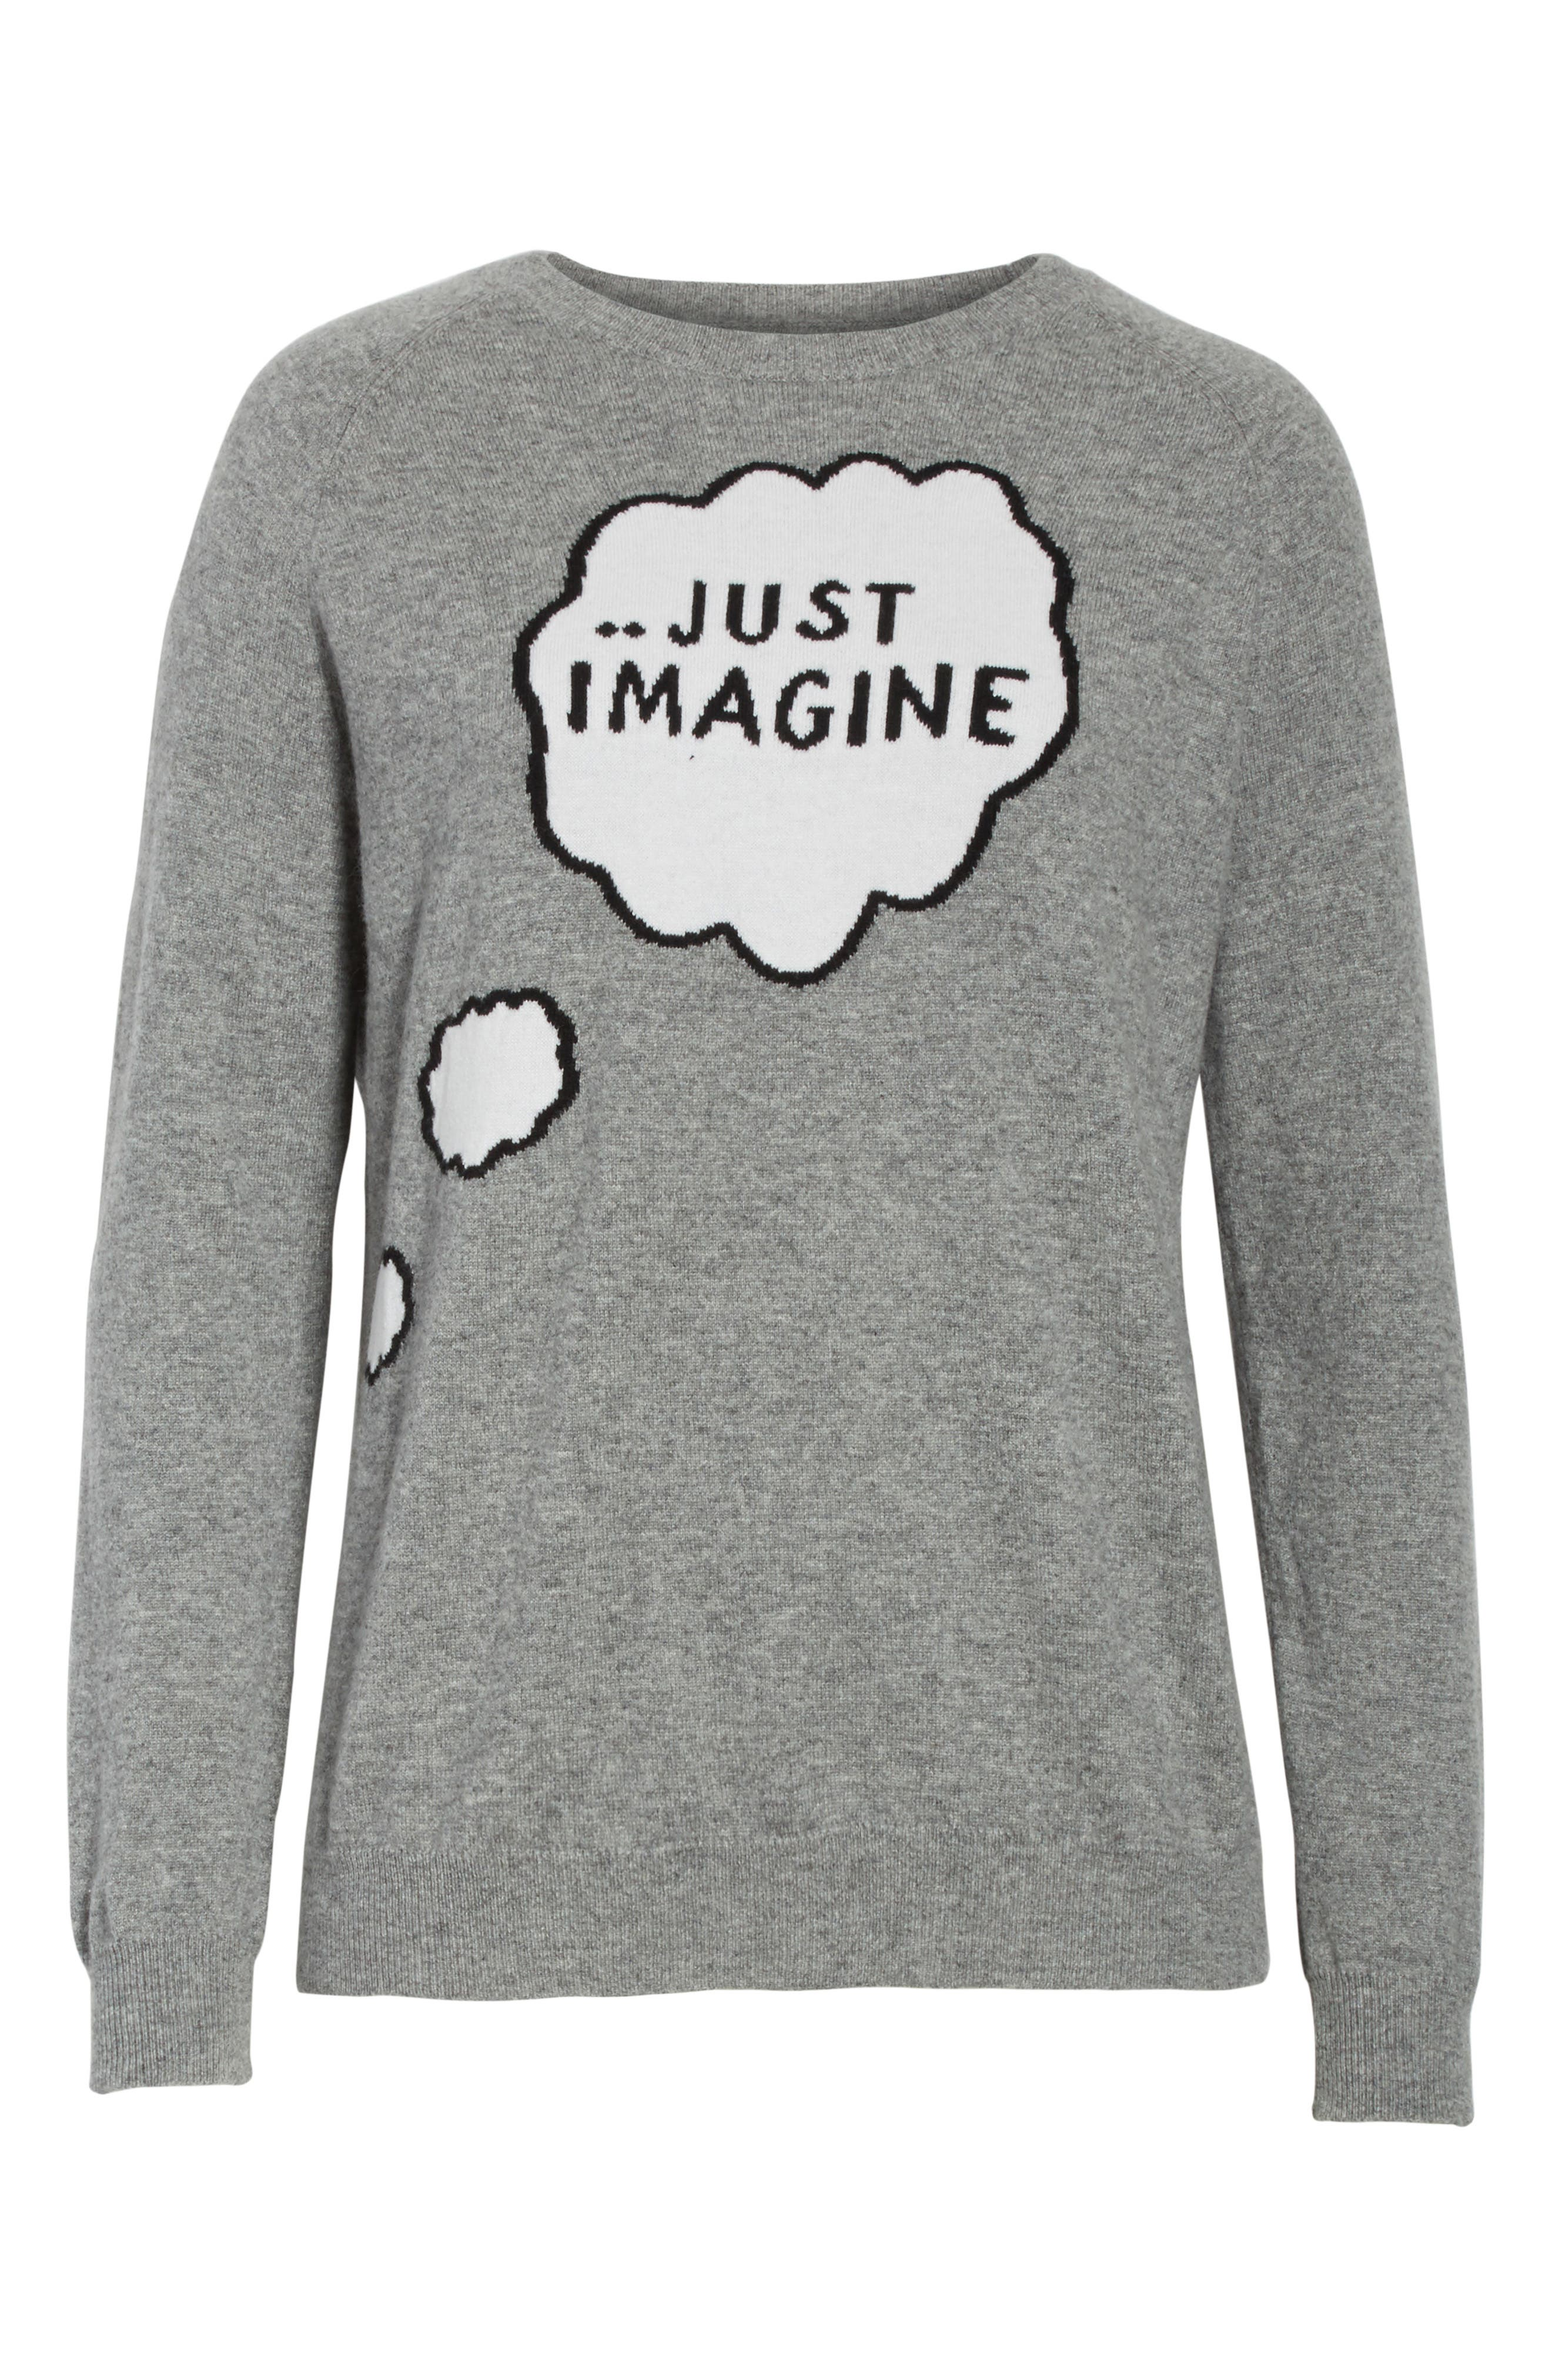 CHINTI & PARKER Just Imagine Moomin Cashmere Sweater,                             Alternate thumbnail 6, color,                             Grey